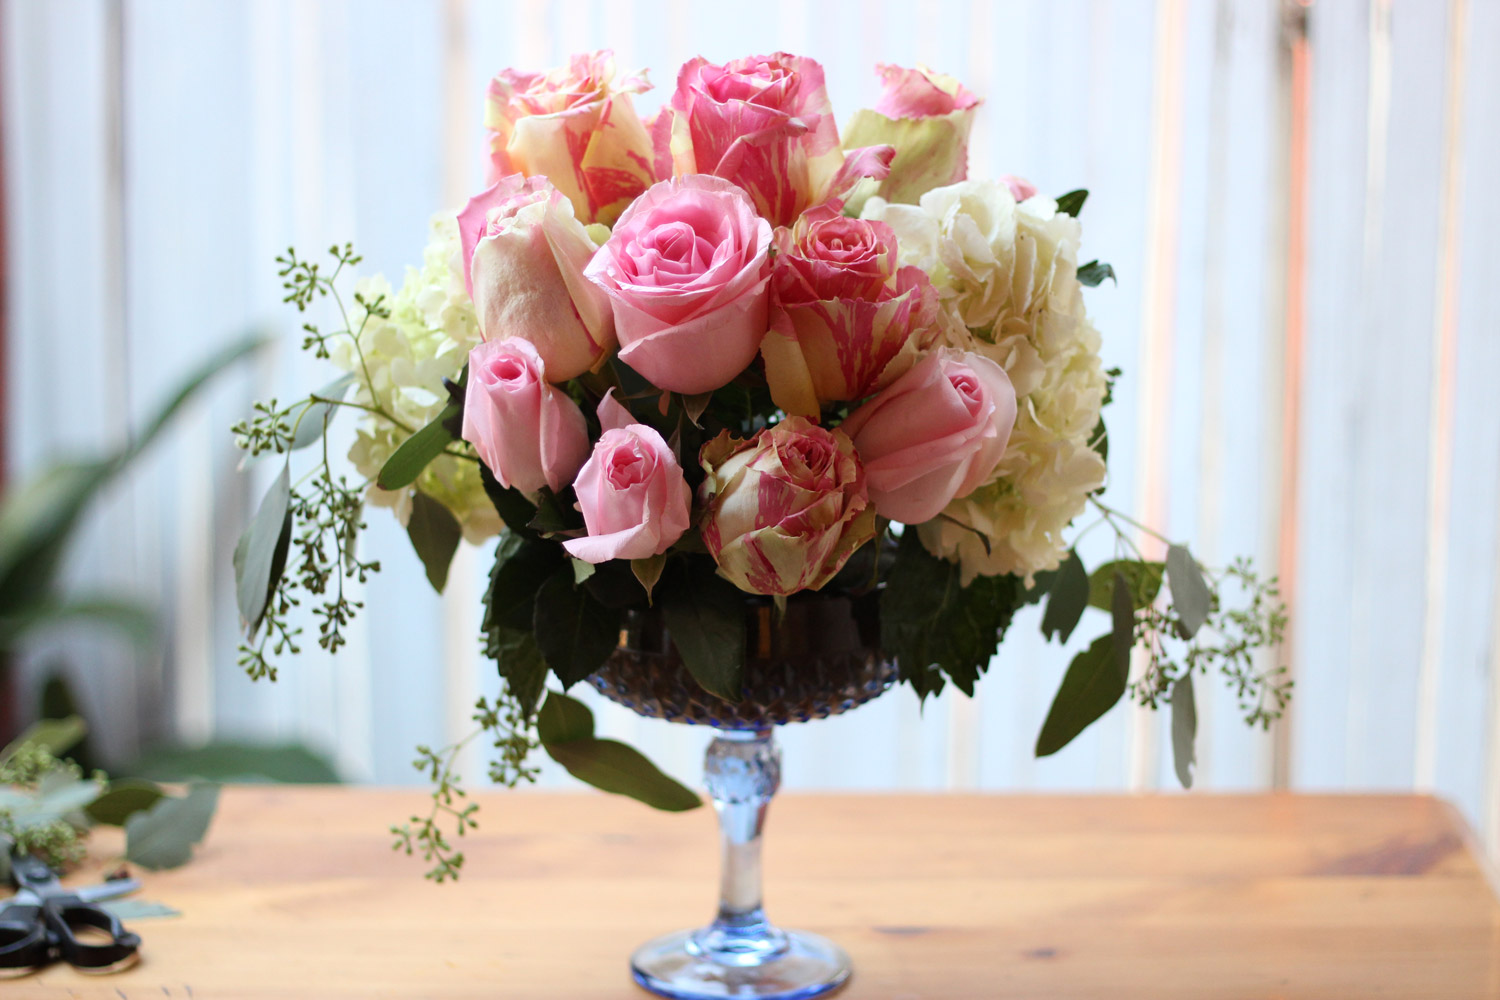 Cut roses shorter as you go, so arrangement is rounded.